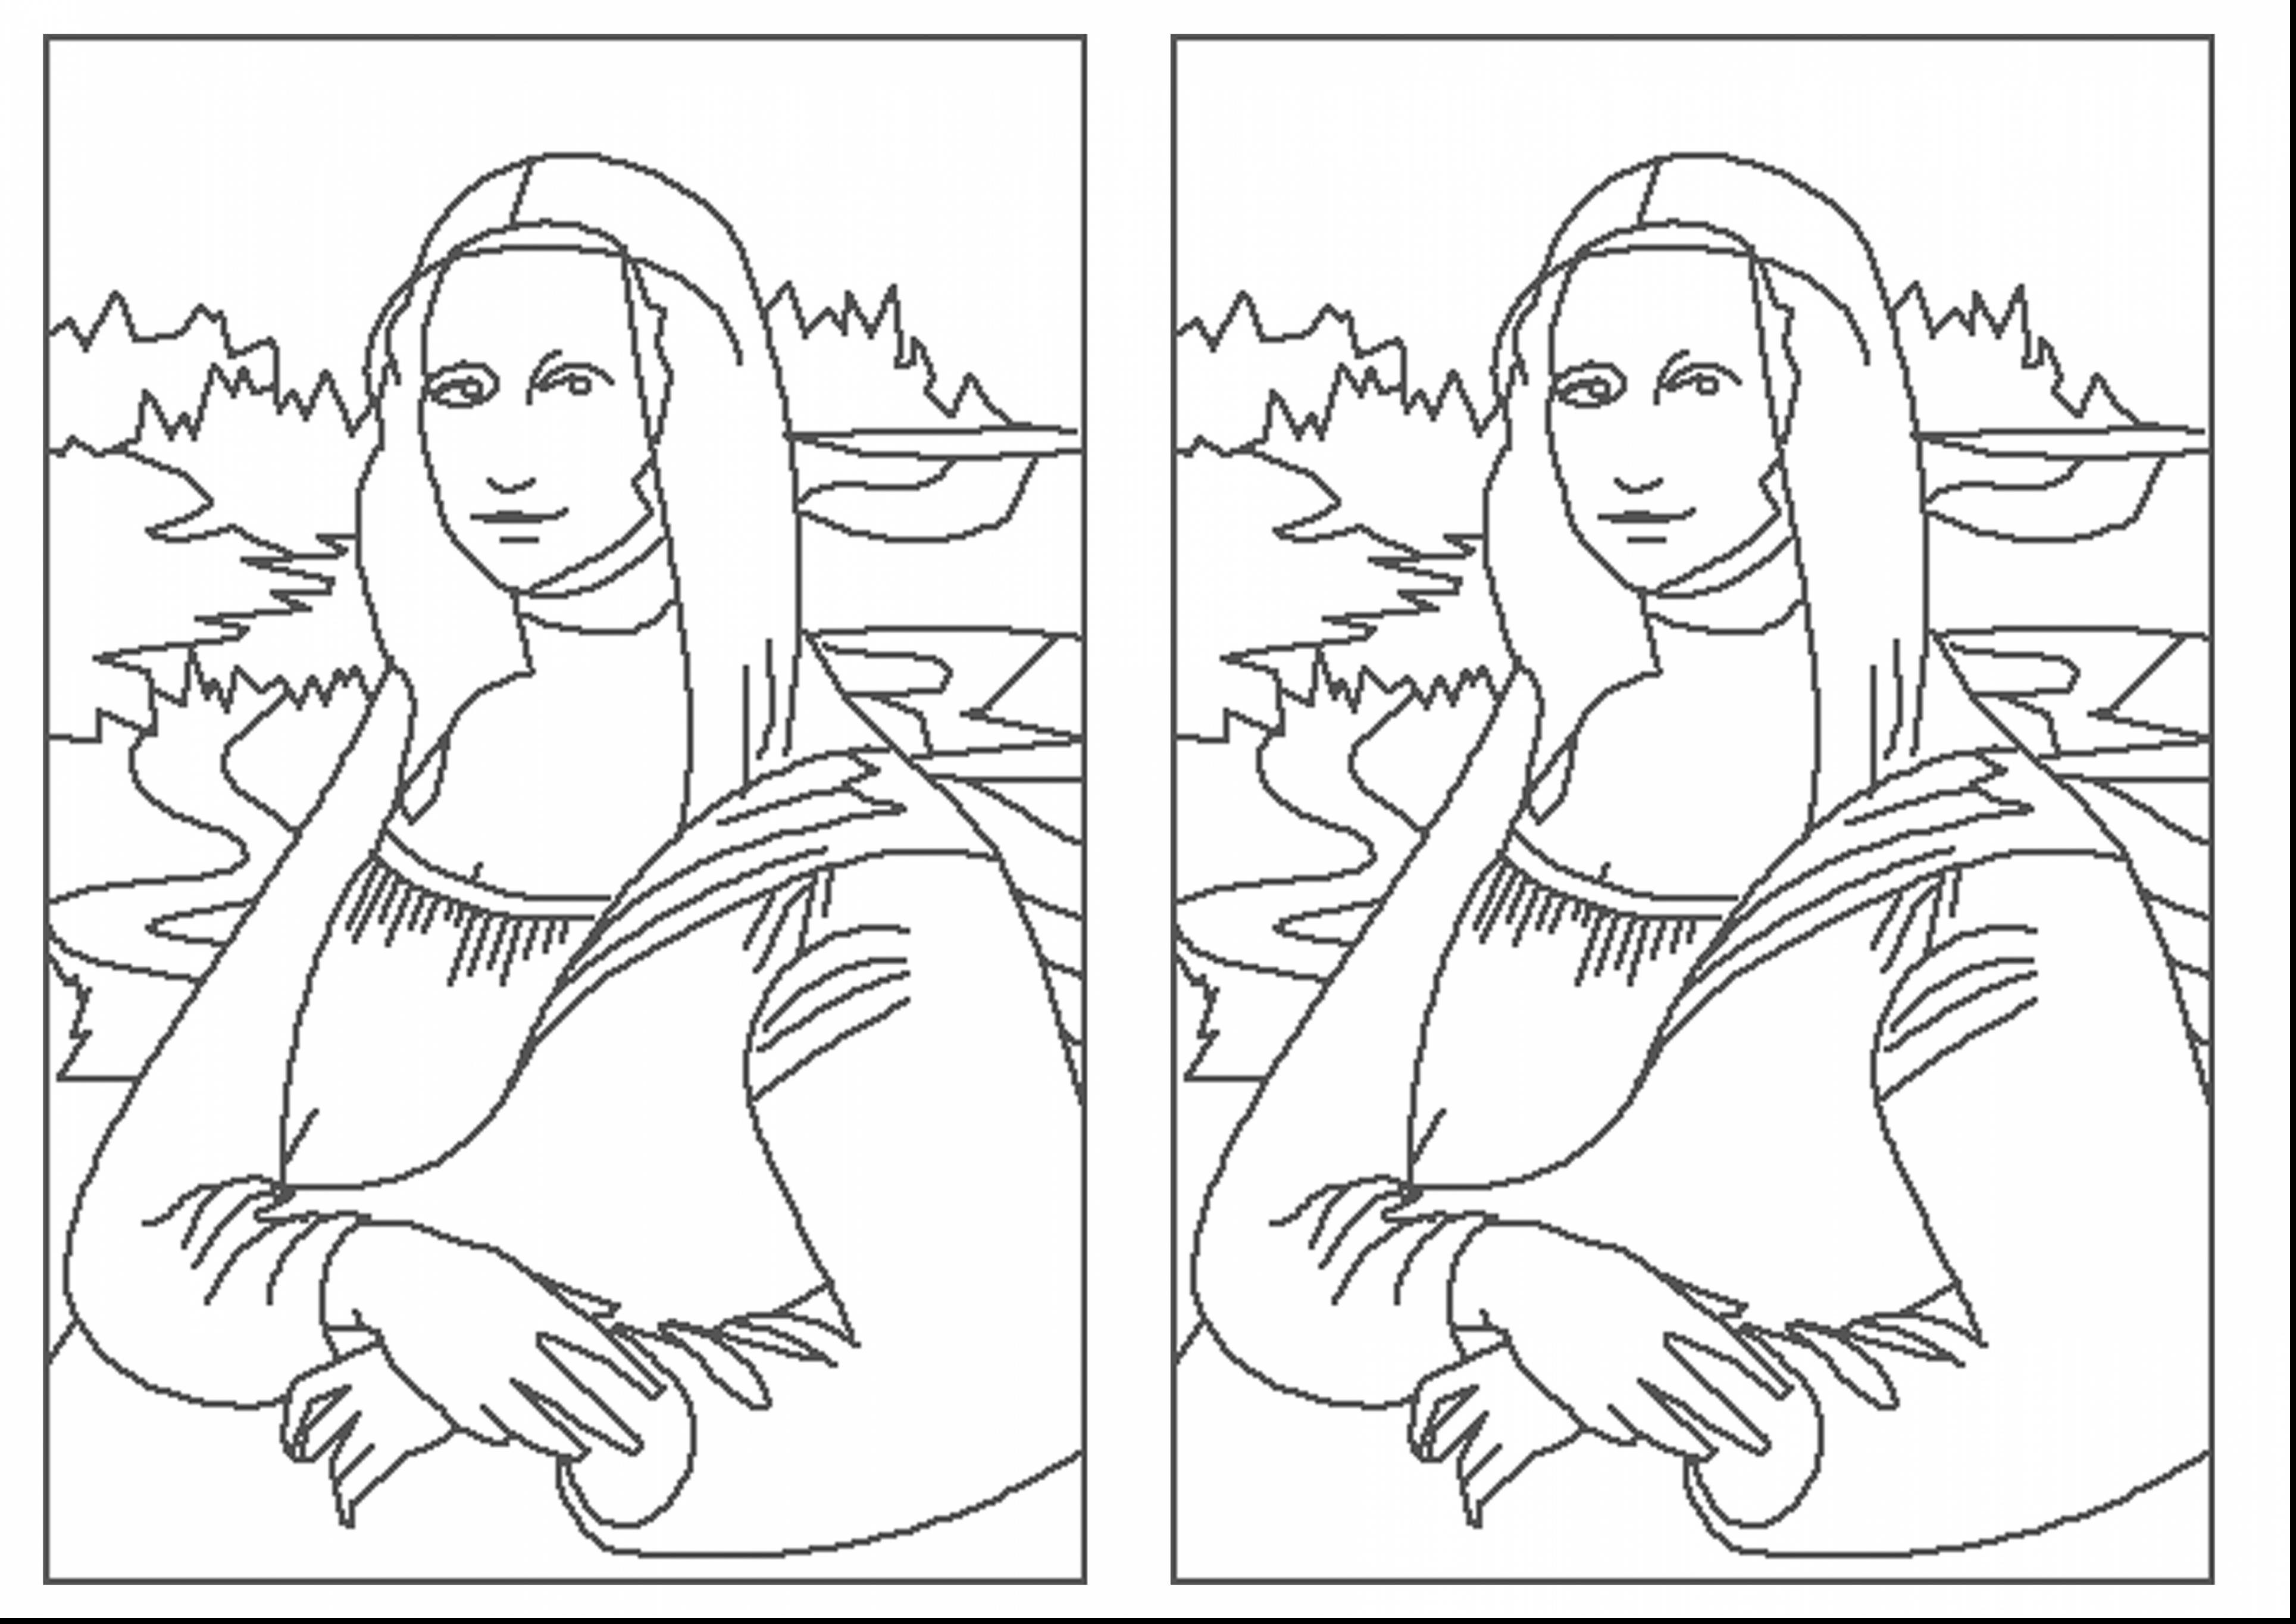 Mona Lisa Coloring Page | Coloringnori - Coloring Pages ...